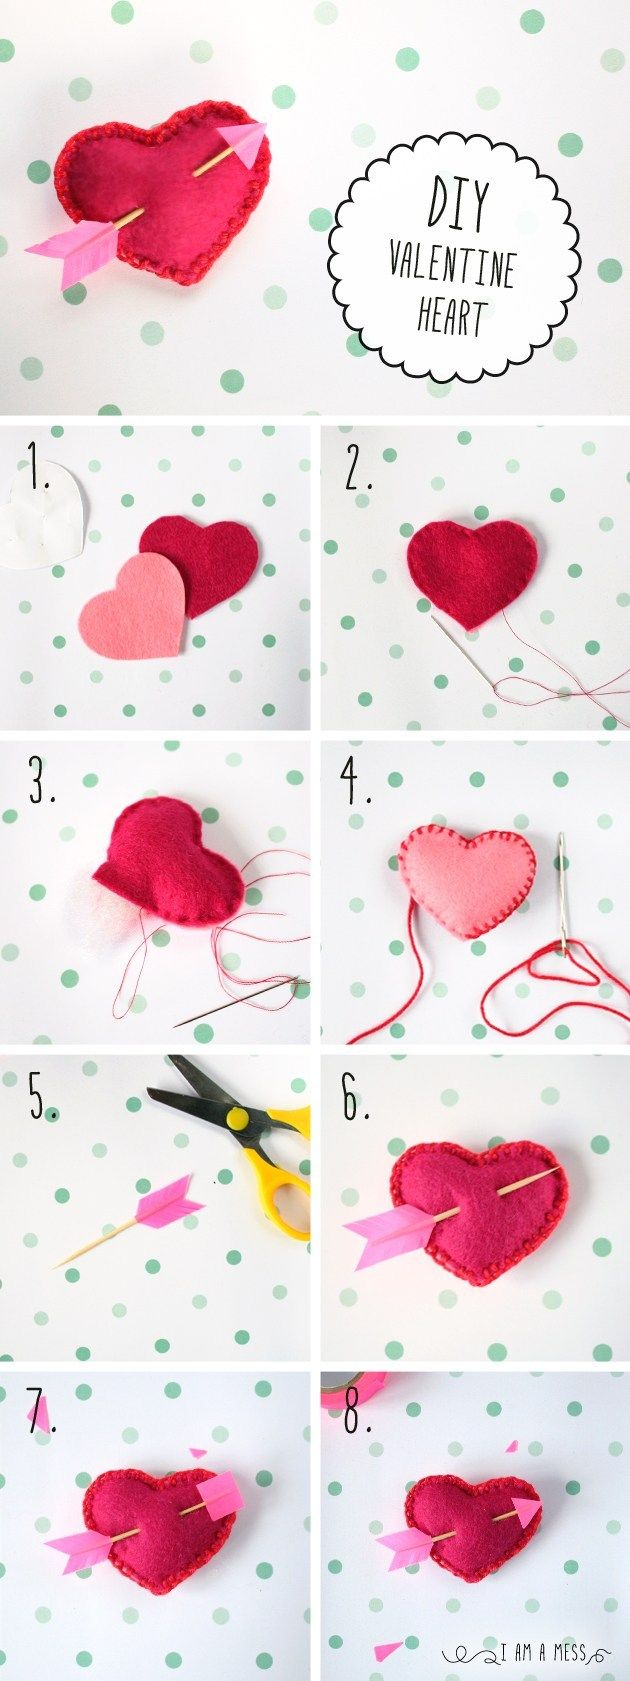 These Valentine's Day Crafts Are the Best Way to Spread the Love This Year Valentine Day Wreaths, Valentines Day Hearts, Valentine Day Love, Valentines Day Decorations, Valentine Day Crafts, Heart Diy, Heart Crafts, Diy Valentine's Hearts, Saint Valentine